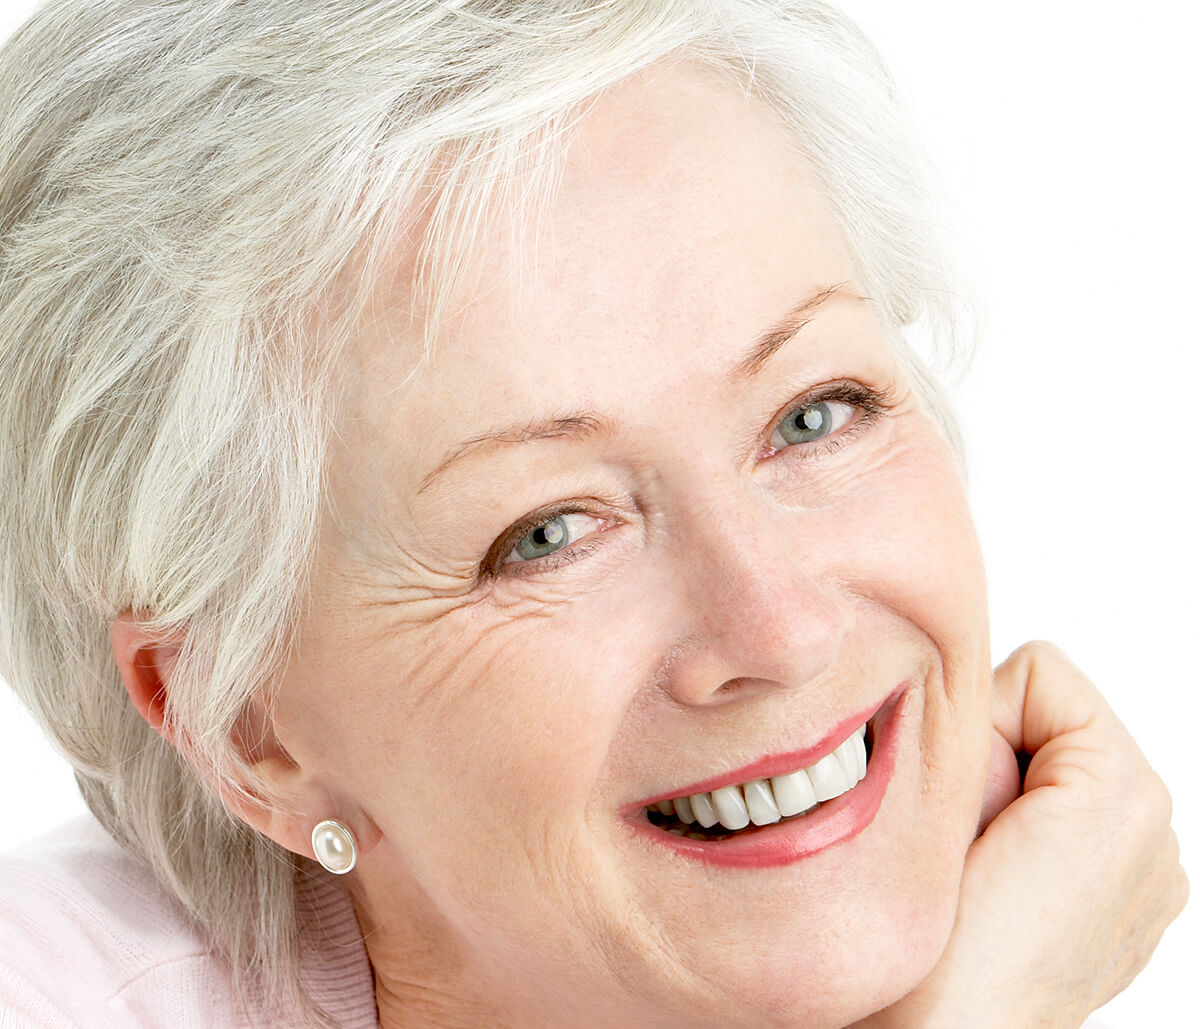 When do you Need Affordable Dentures in Houston, TX Area?